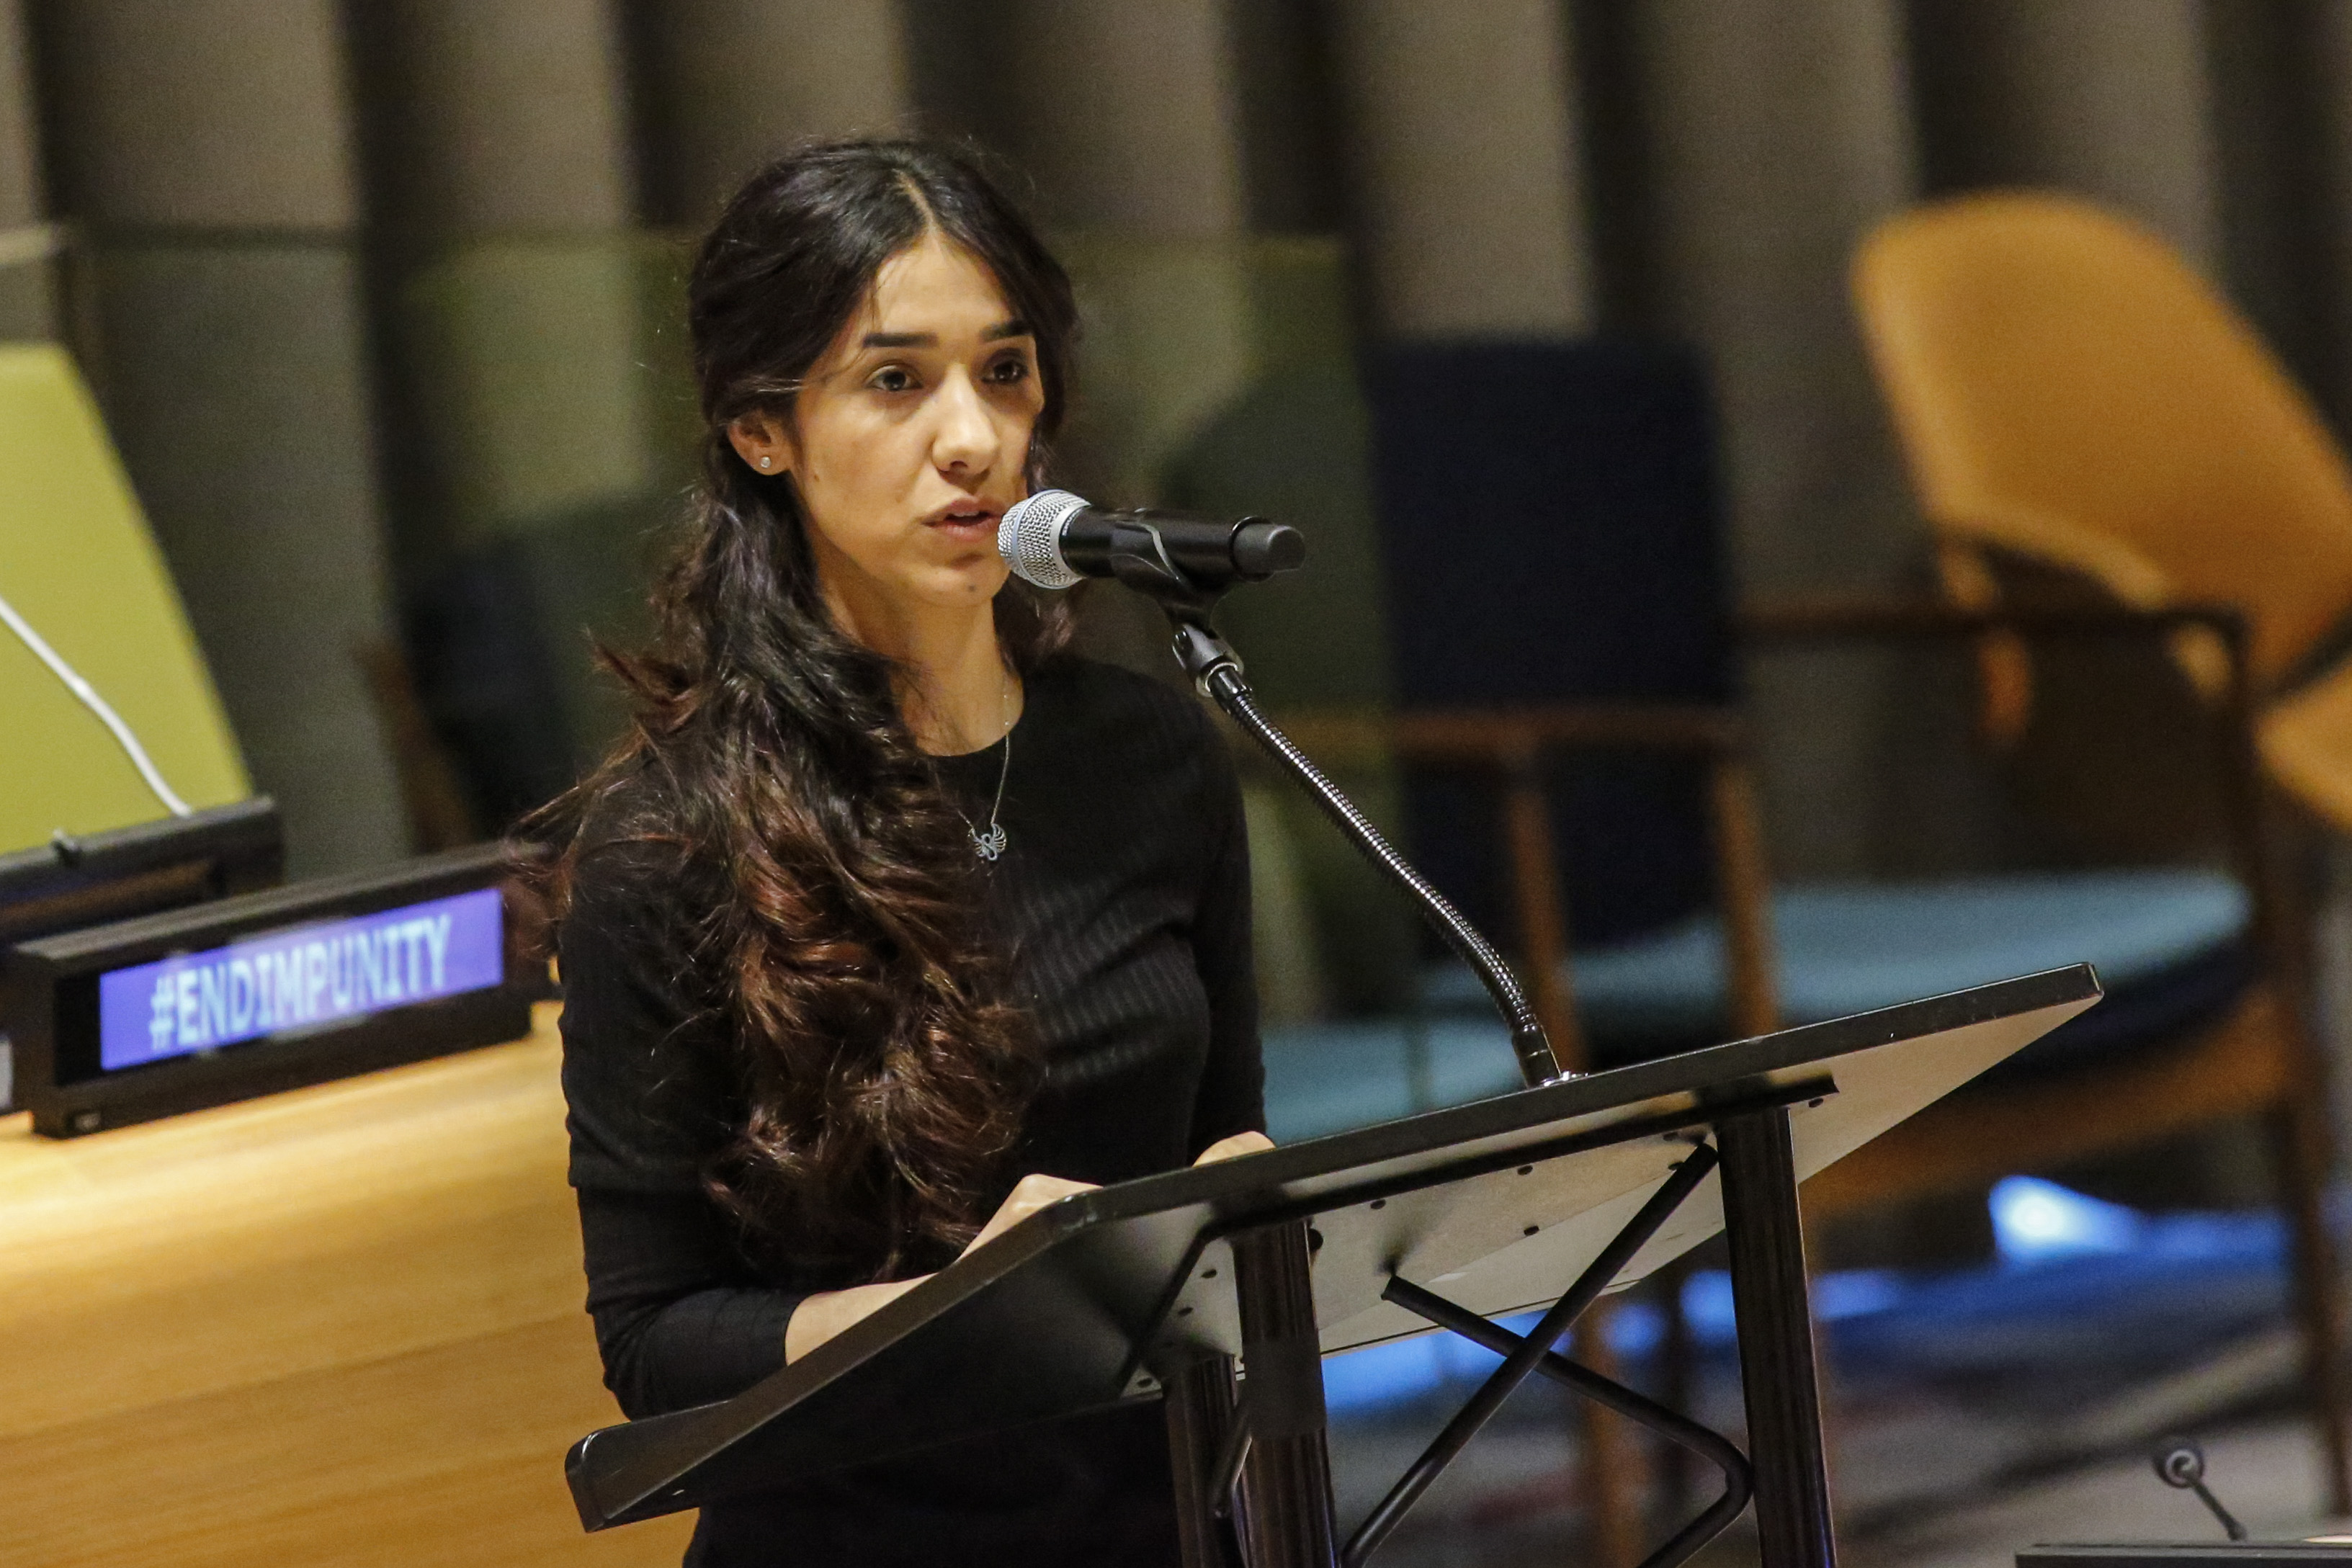 Yazidi human rights activist Nadia Murad speaks as she attends 'The Fight against Impunity for Atrocities: Bringing Da'esh to Justice' at the United Nations Headaquarters on March 9, 2017 in New York.